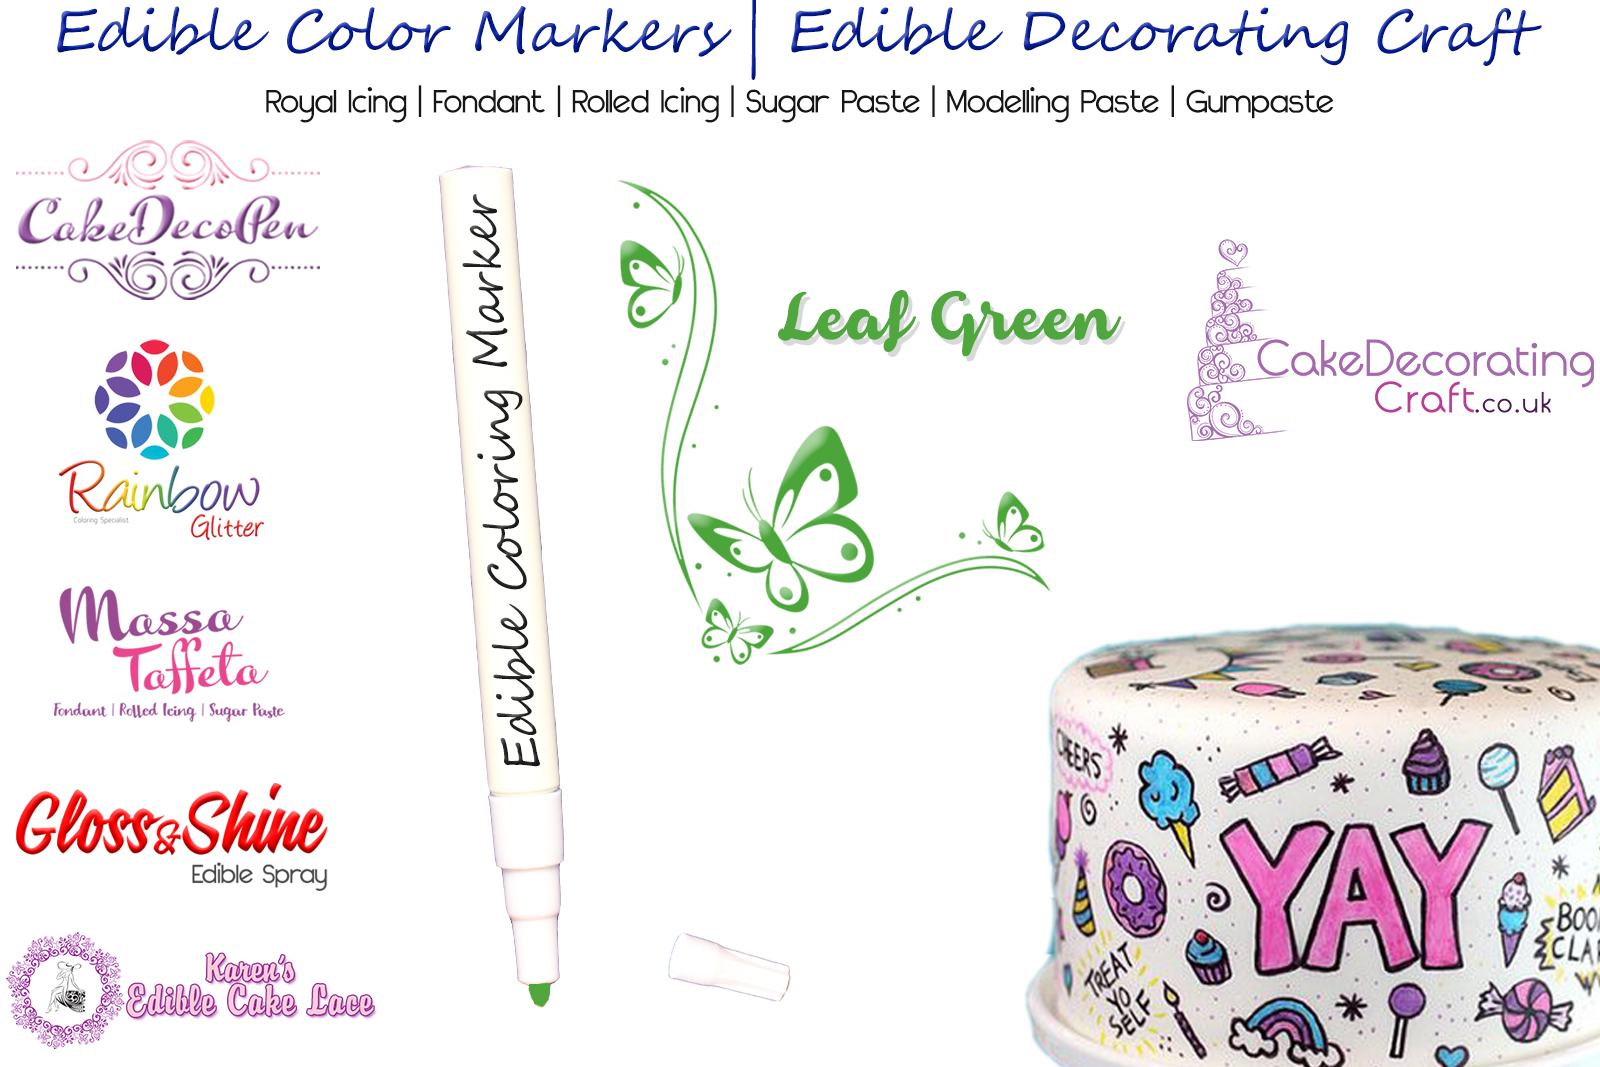 Cake Decorating Craft | Icing Pen | Icing Colouring Marker | Edible Painting Ink | Leaf Green | Christmas Cake Cupcake Decorating Craft